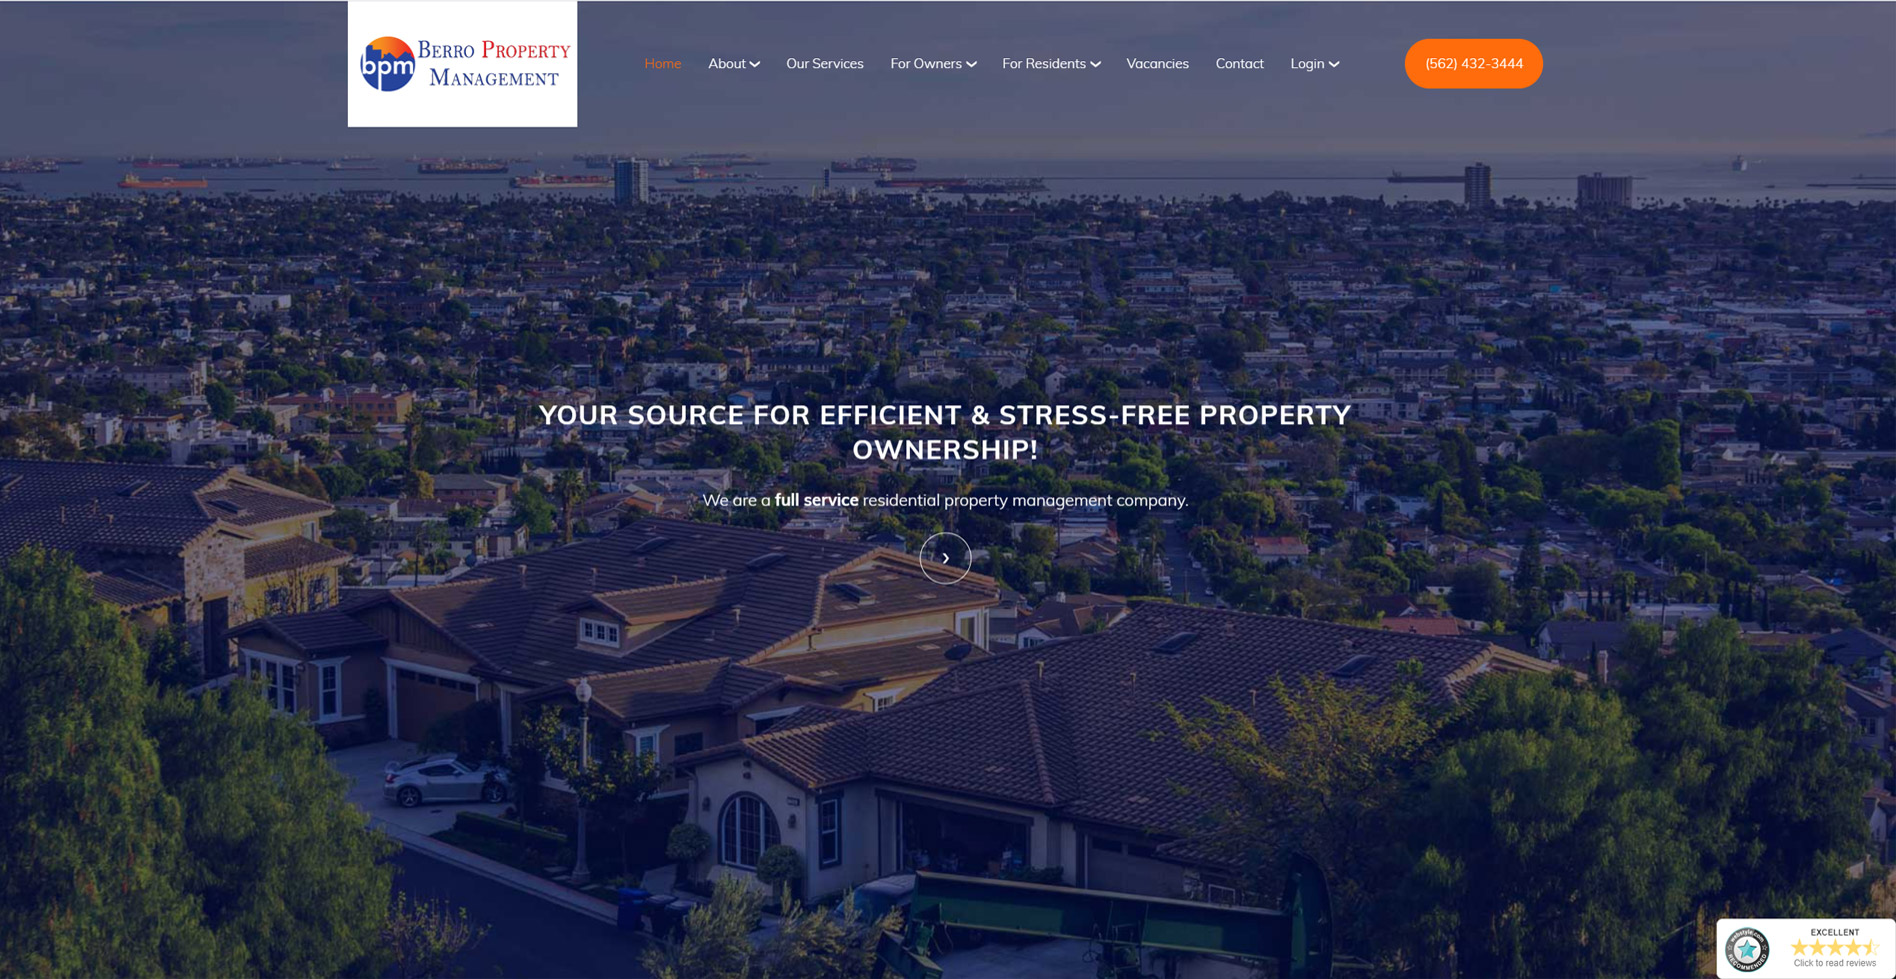 Berro Property Management Website